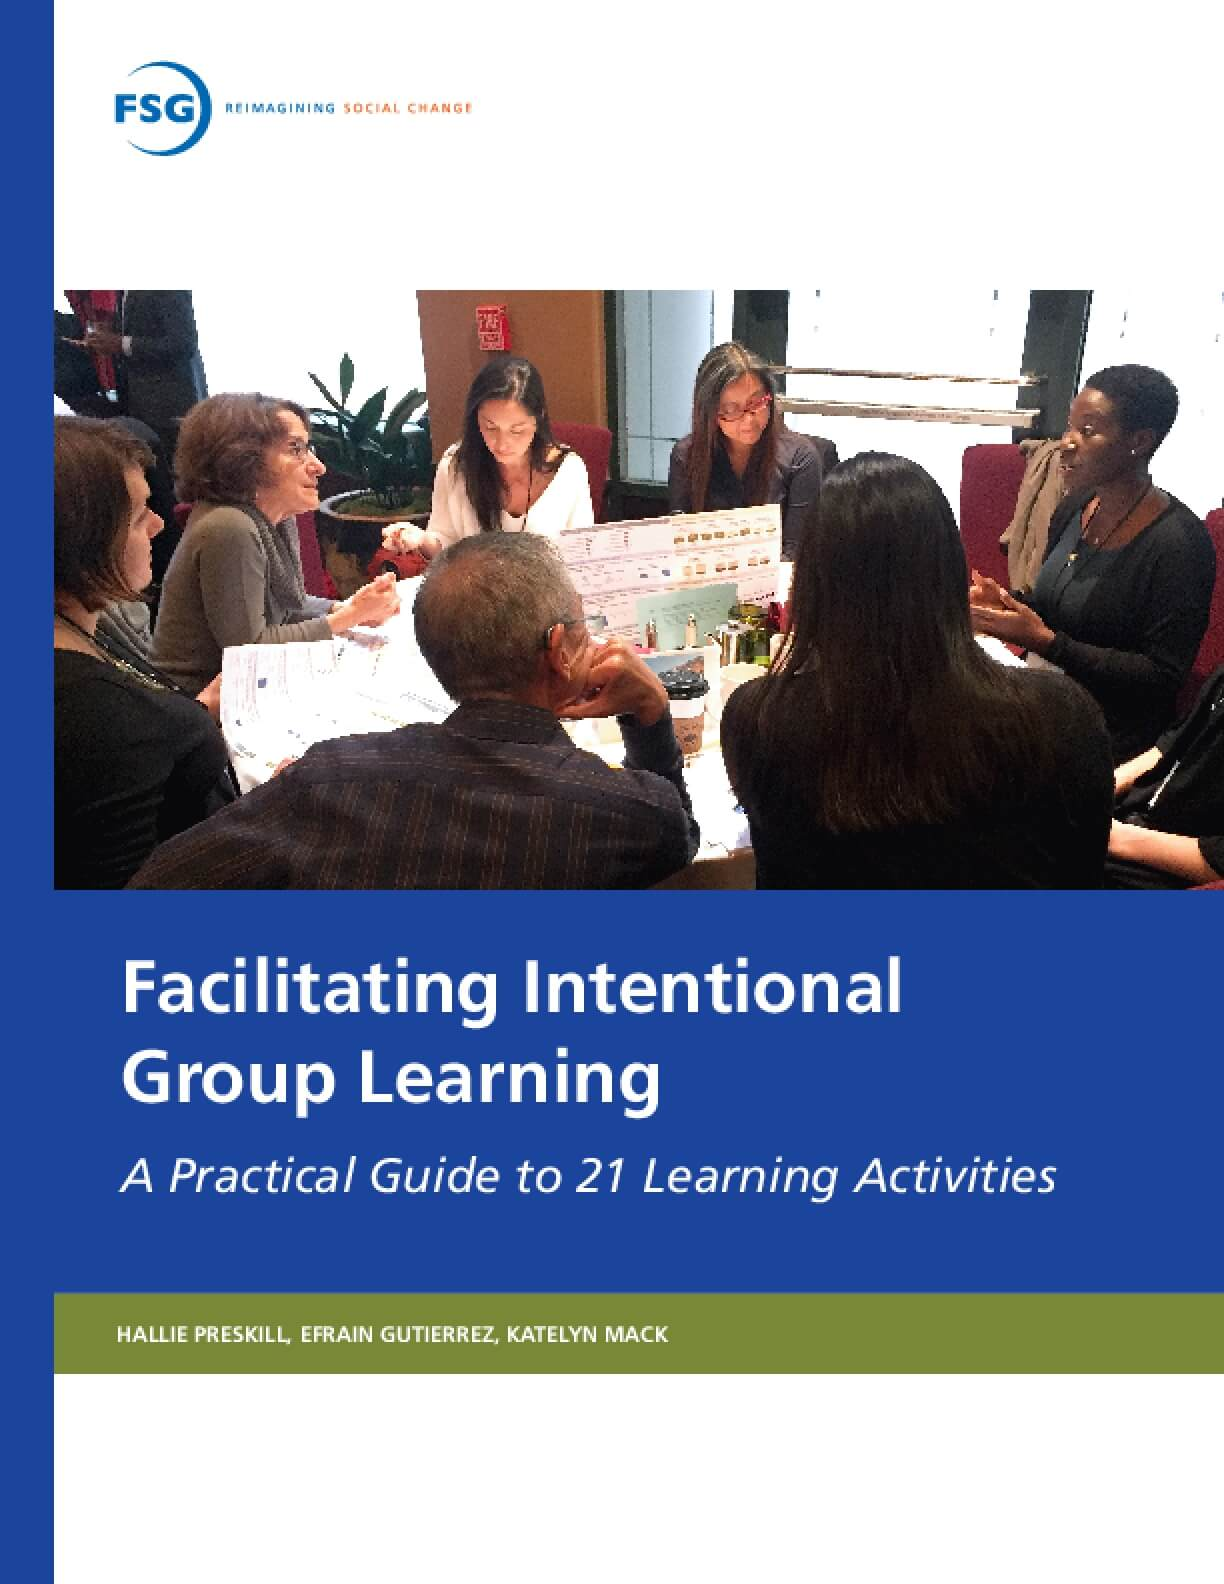 Facilitating Intentional Group Learning: A Practical Guide to 21 Learning Activites